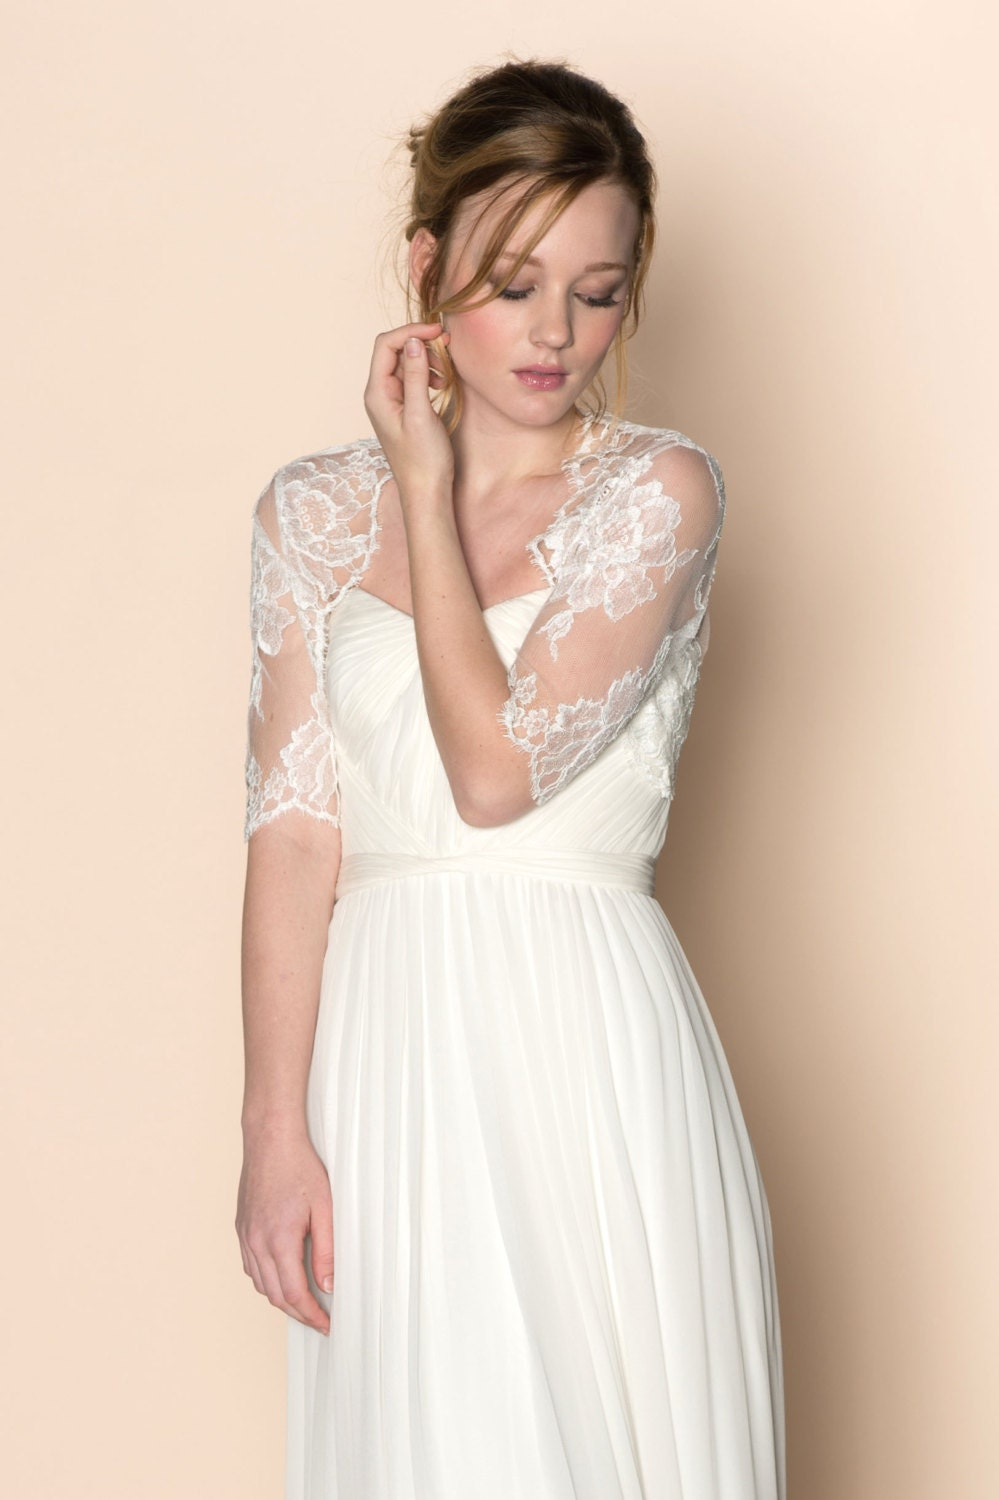 Roseline Bridal French Lace Tulle Bolero Cover Up Shrug In